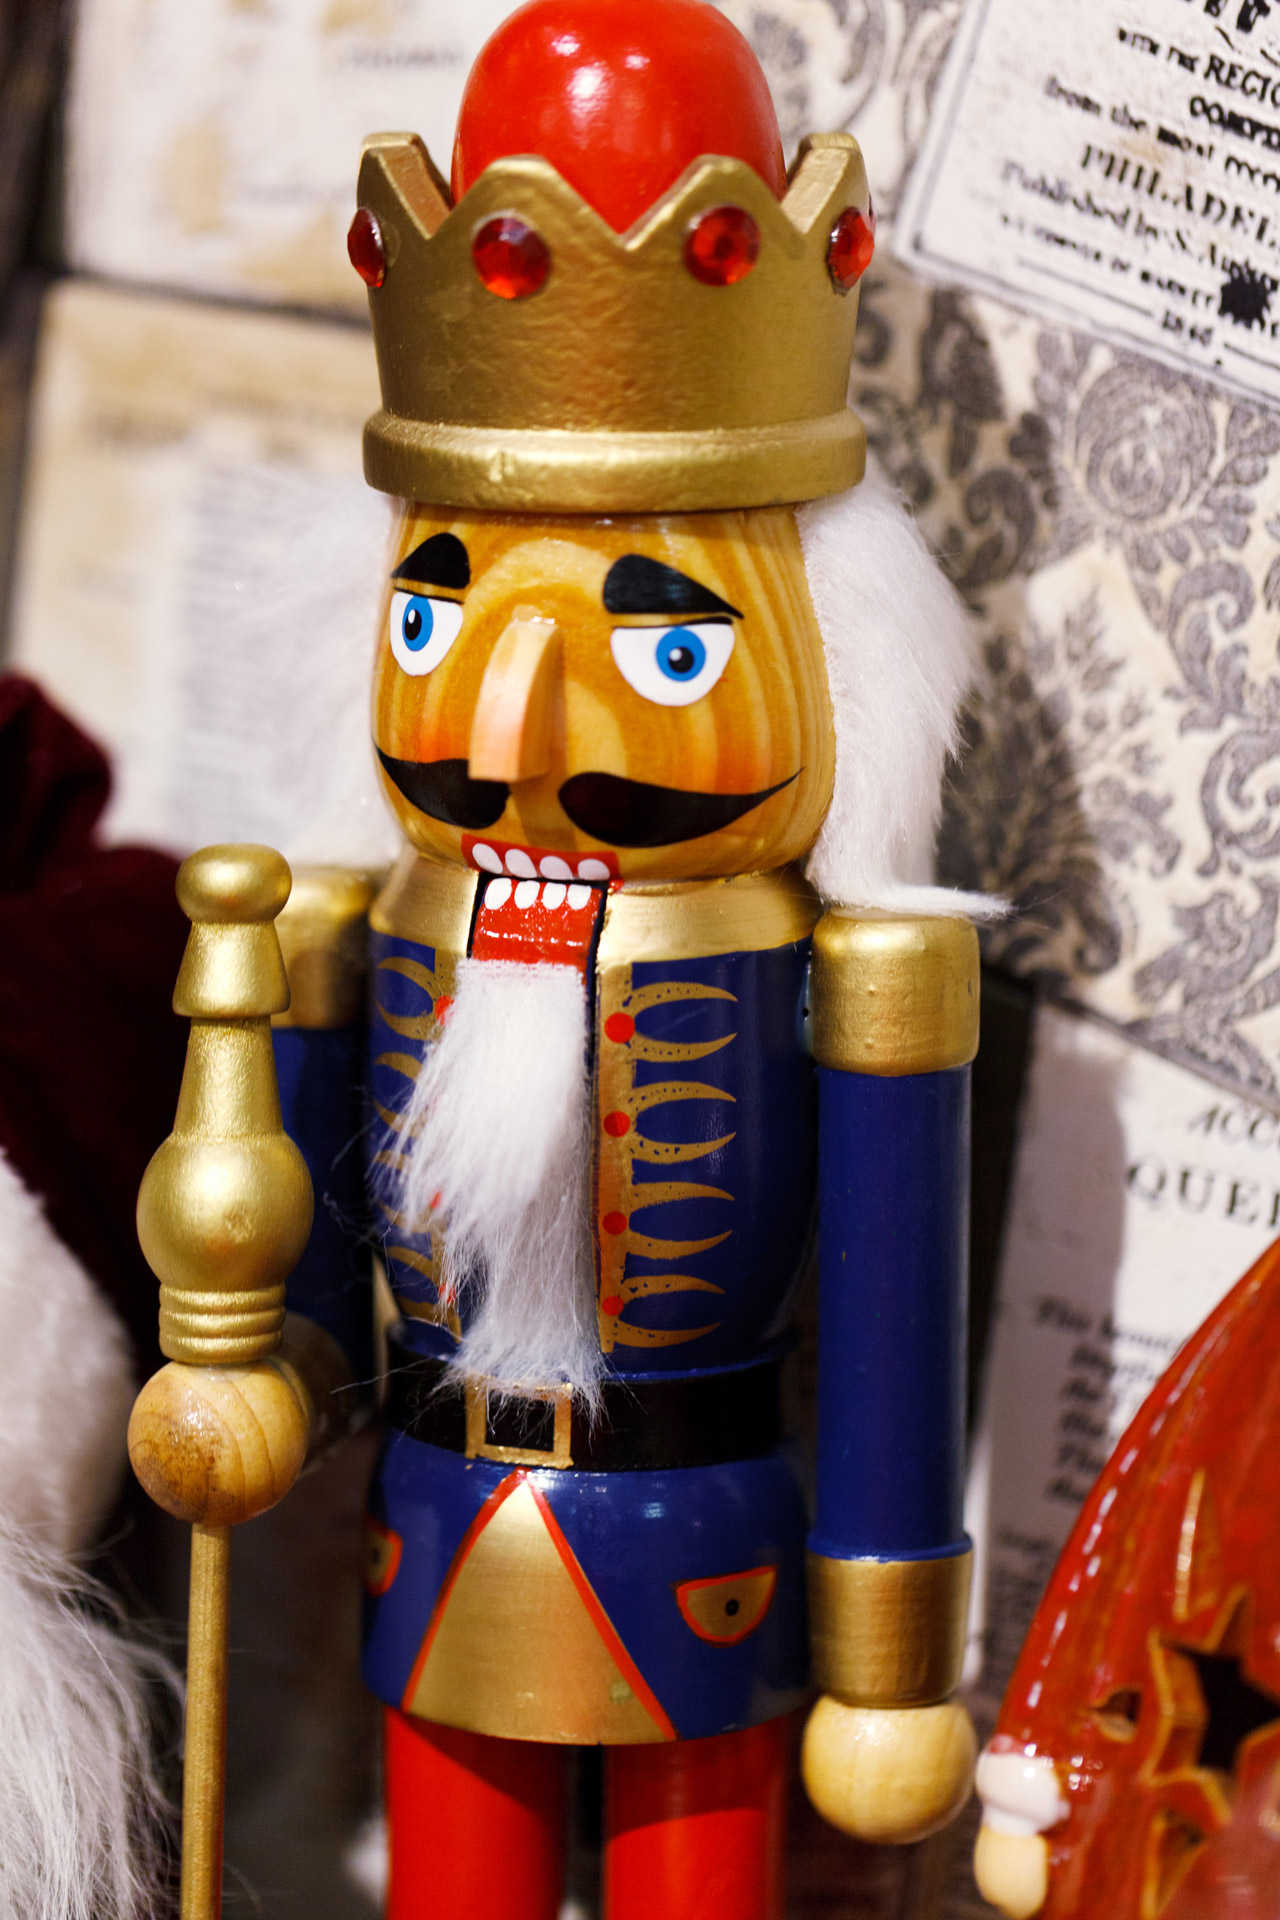 Nutcracker Free Stock Photo Public Domain Pictures